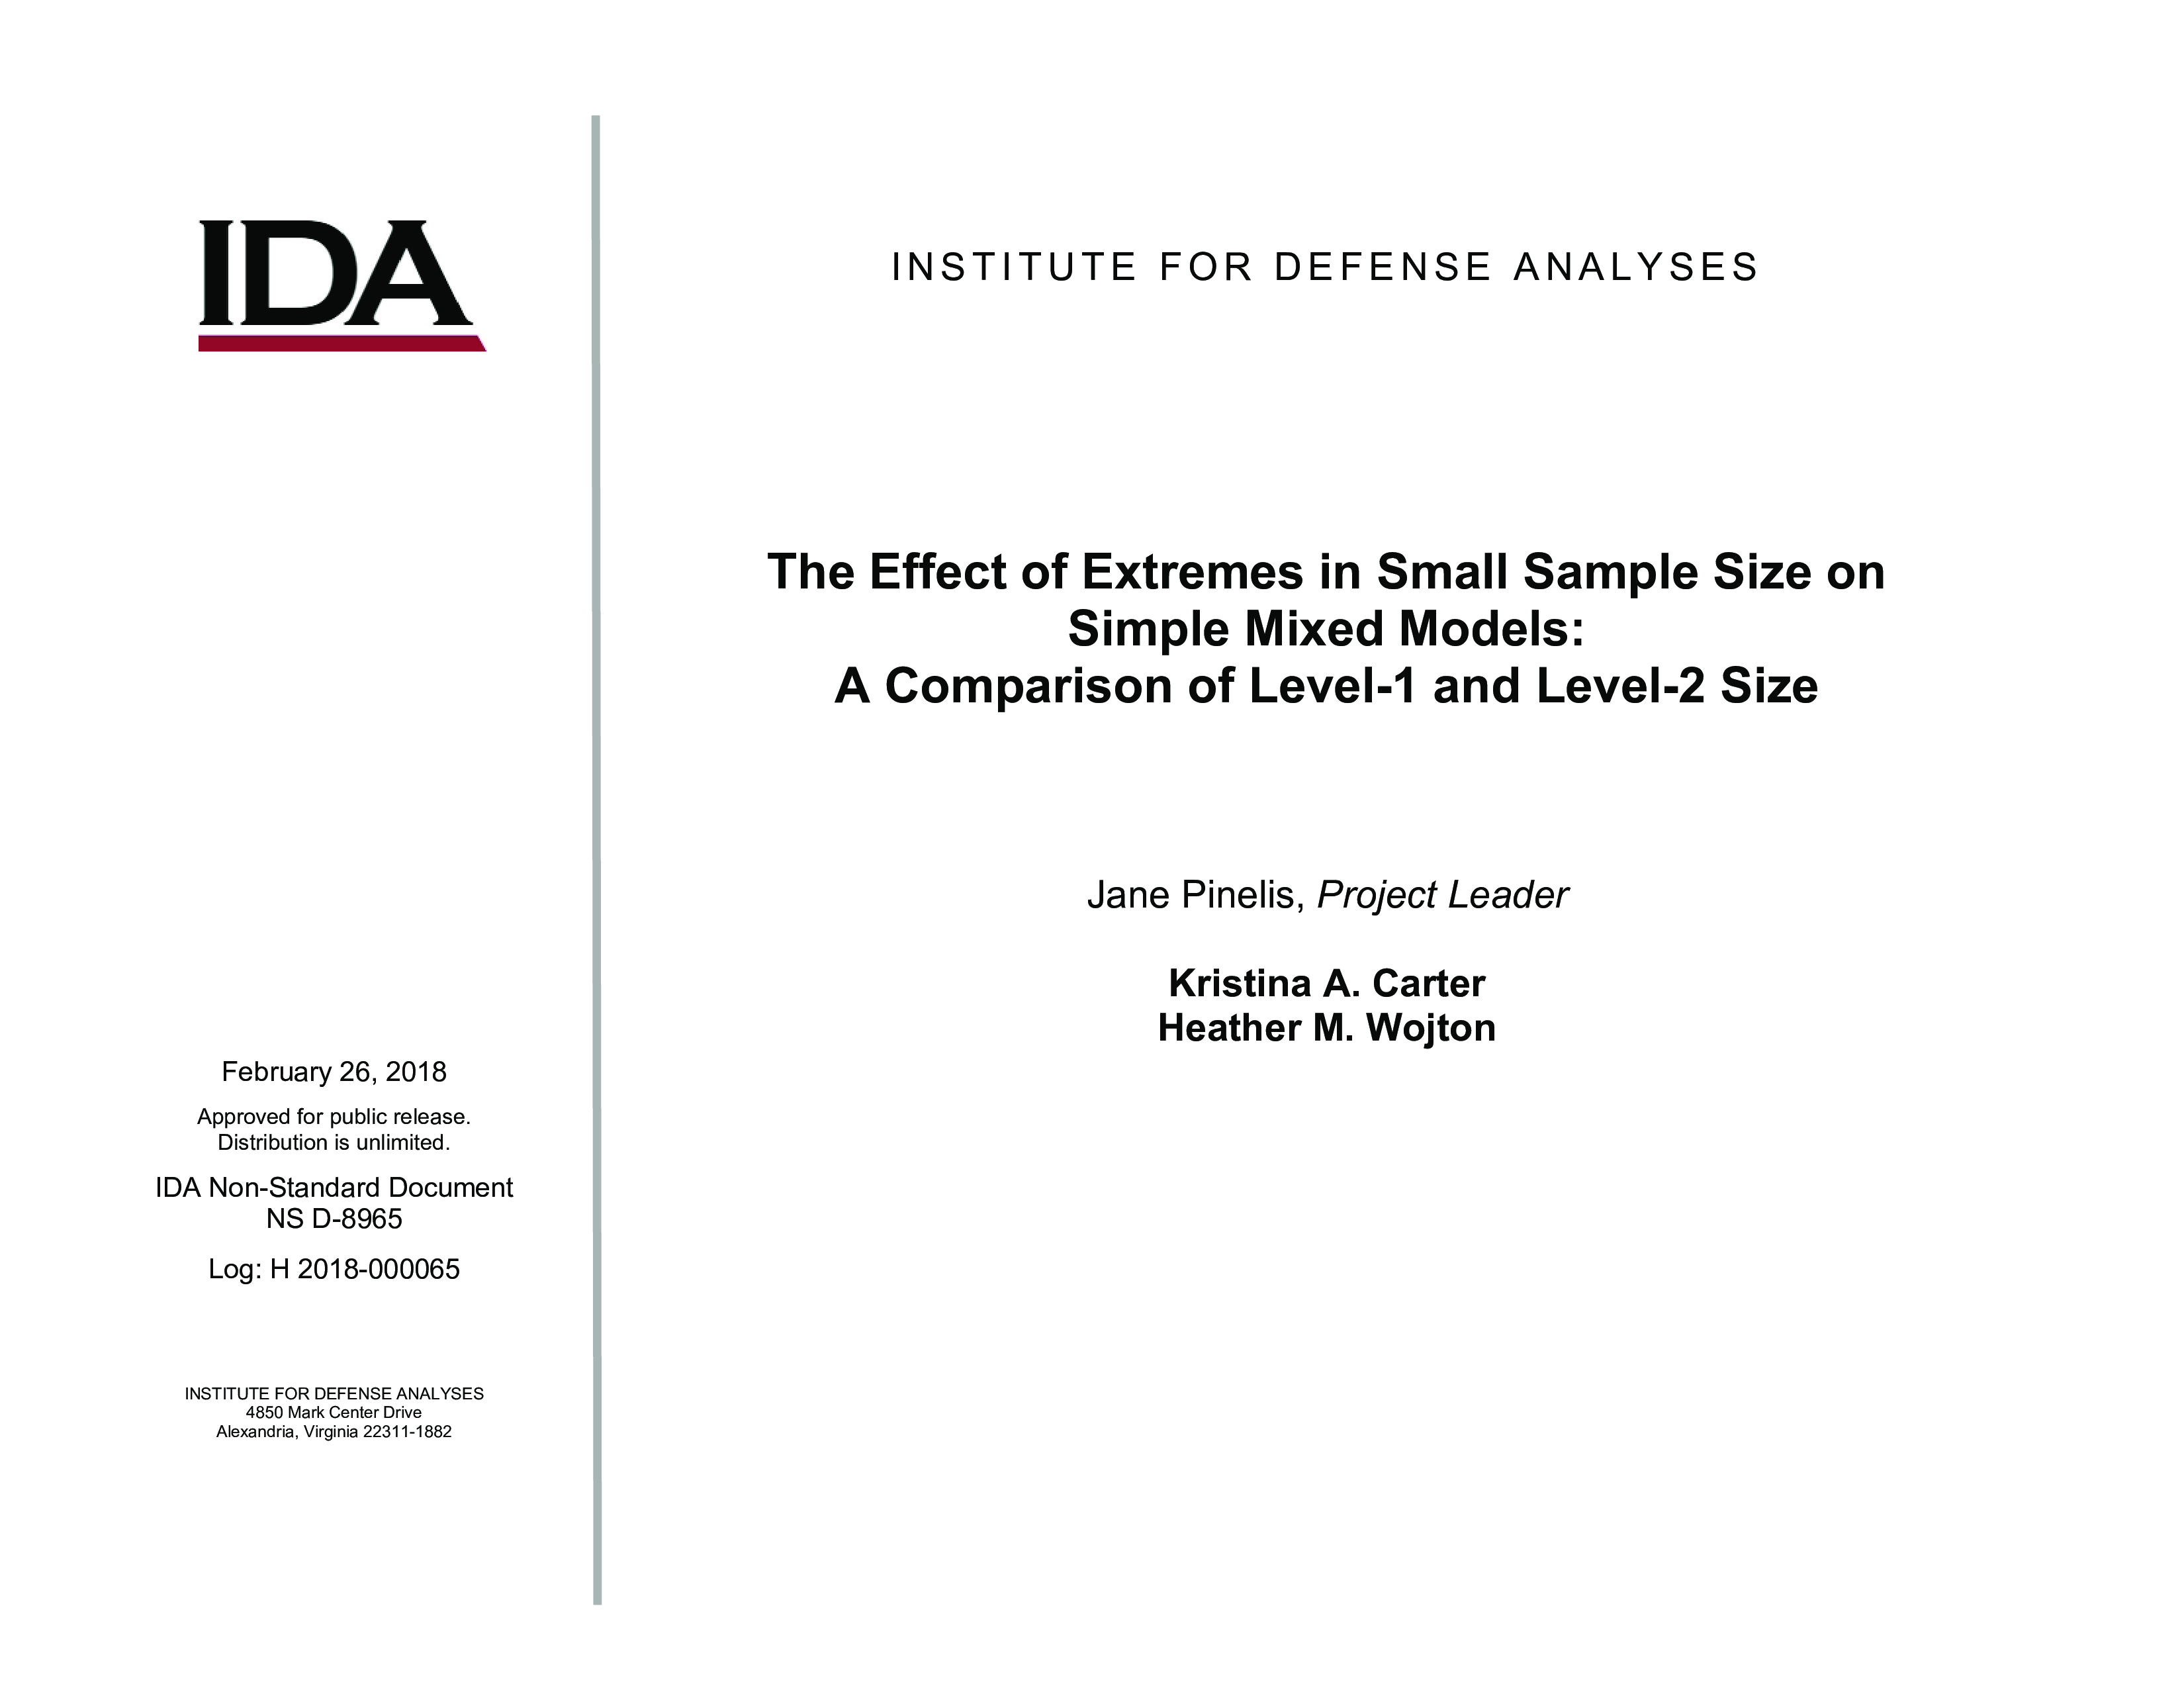 The Effect of Extremes in Small Sample Size on Simple Mixed Models: A Comparison of Level-1 and Level-2 Size